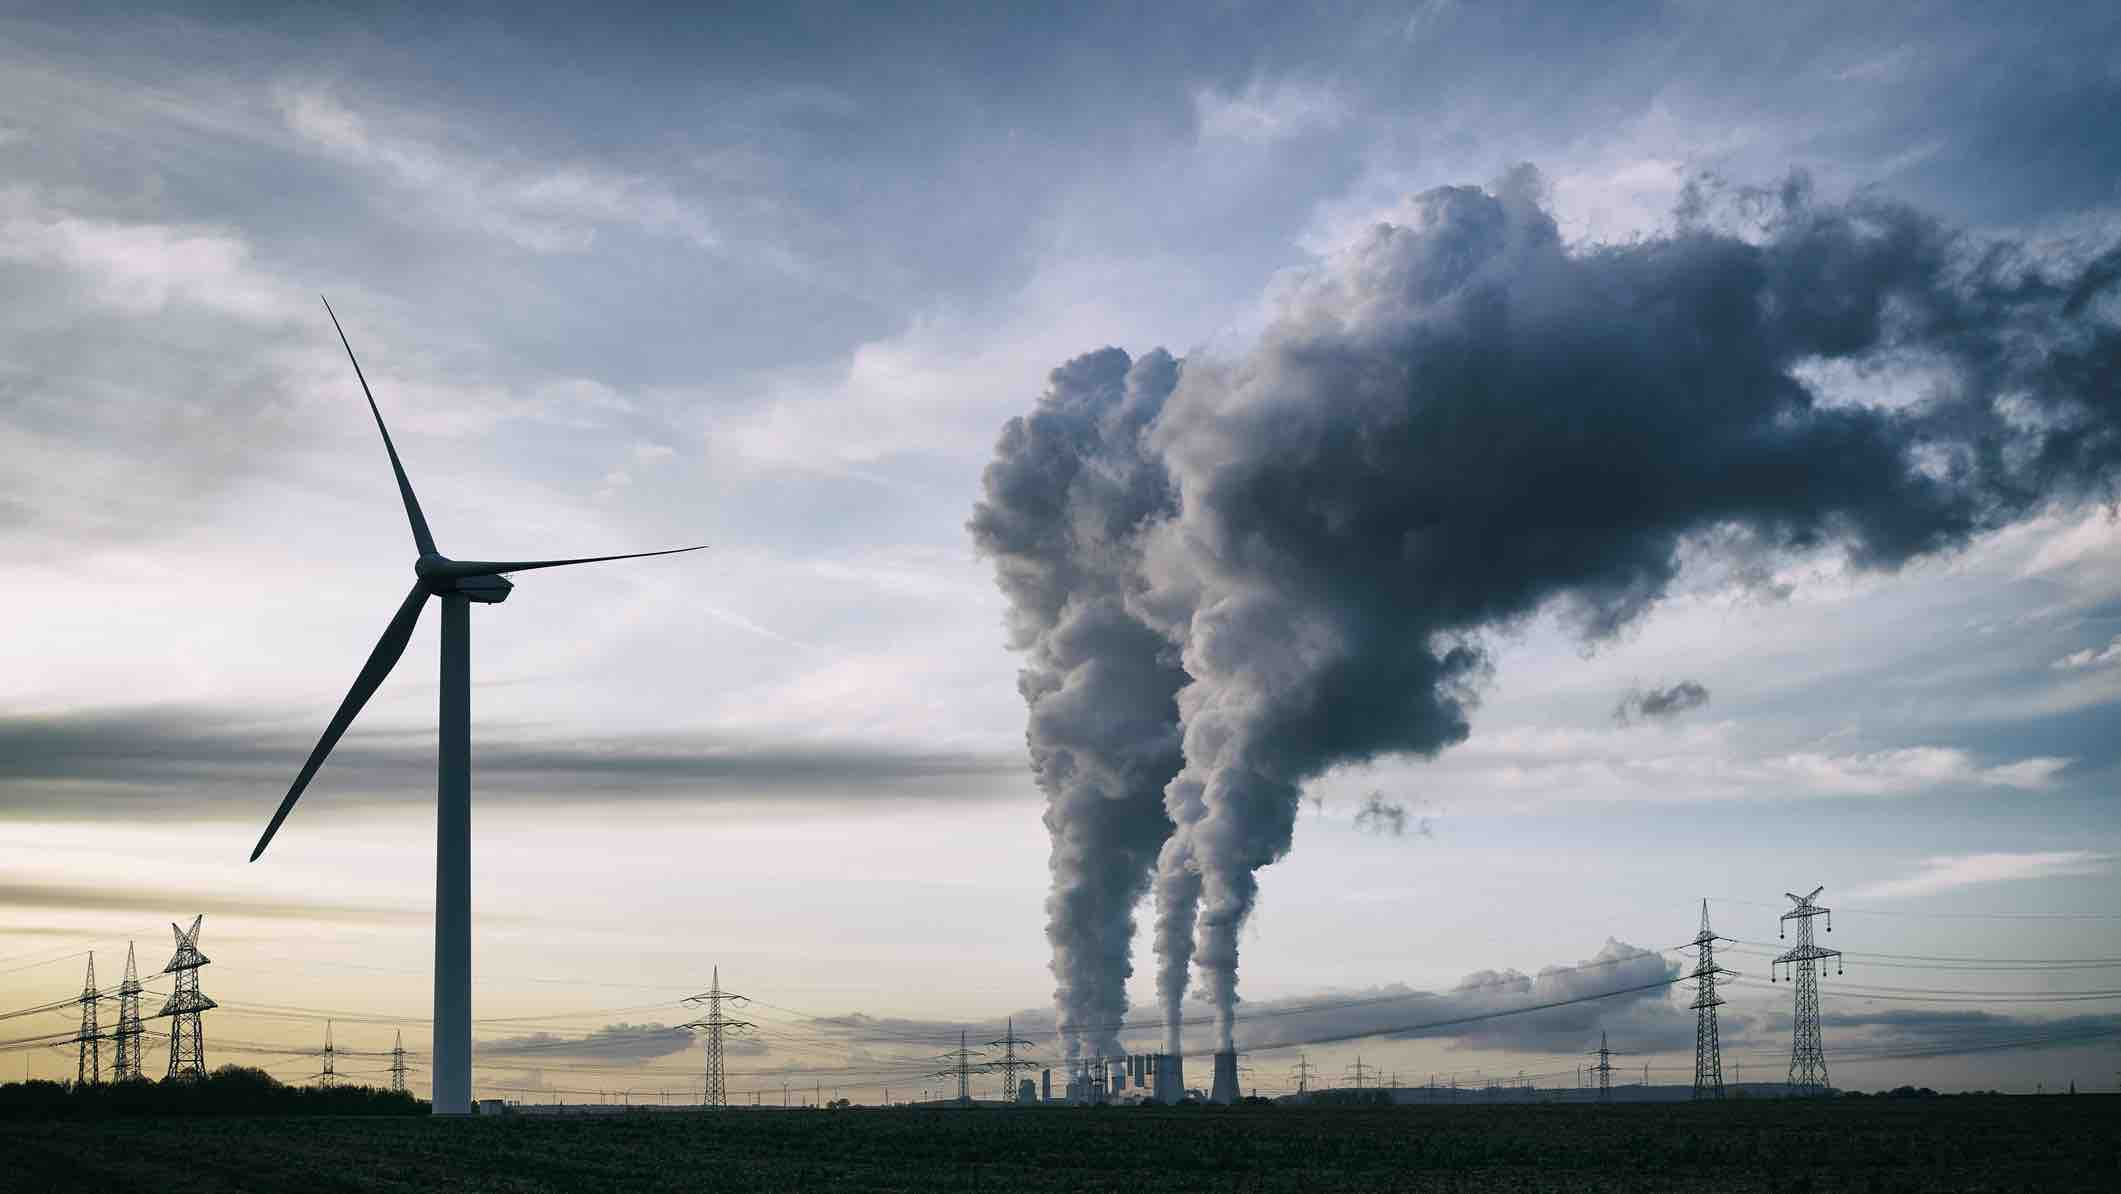 Wind turbines and smoke from a power plant with electrical lines in the distance.